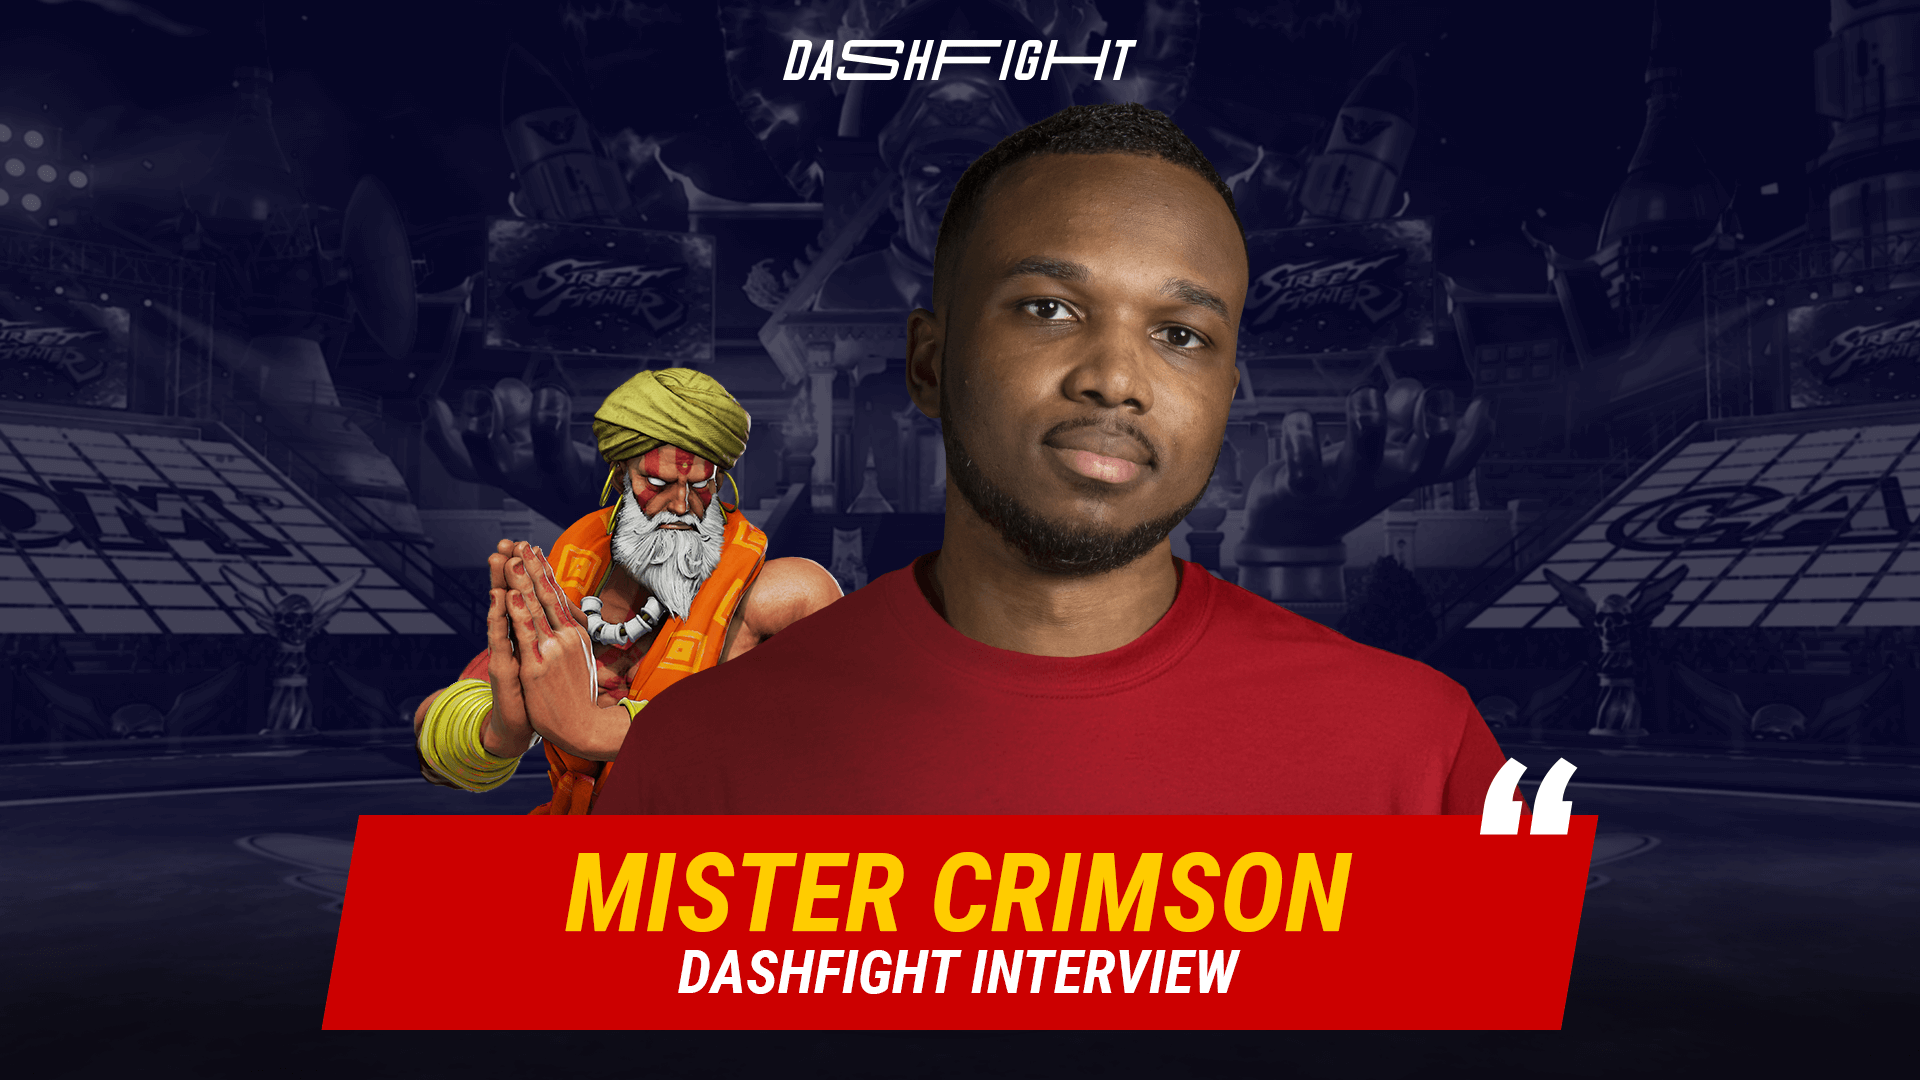 Mister Crimson: [CPT] proves that I need to be more focused and strict